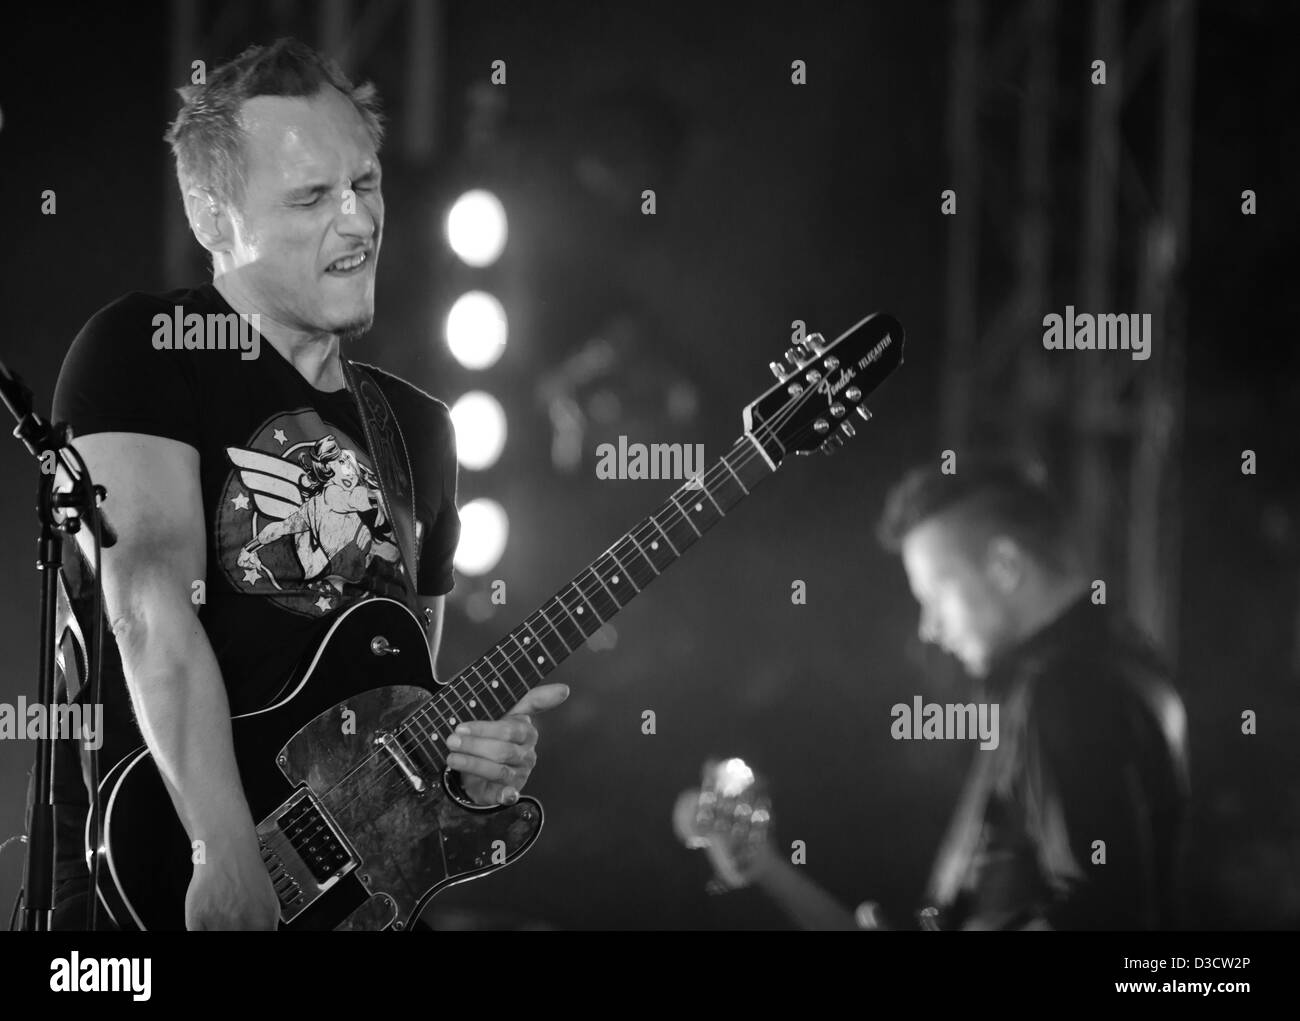 Pix Noel of the German gothic rock band Eisbrecher performing at the Amphi Festival in 2012 - Stock Image